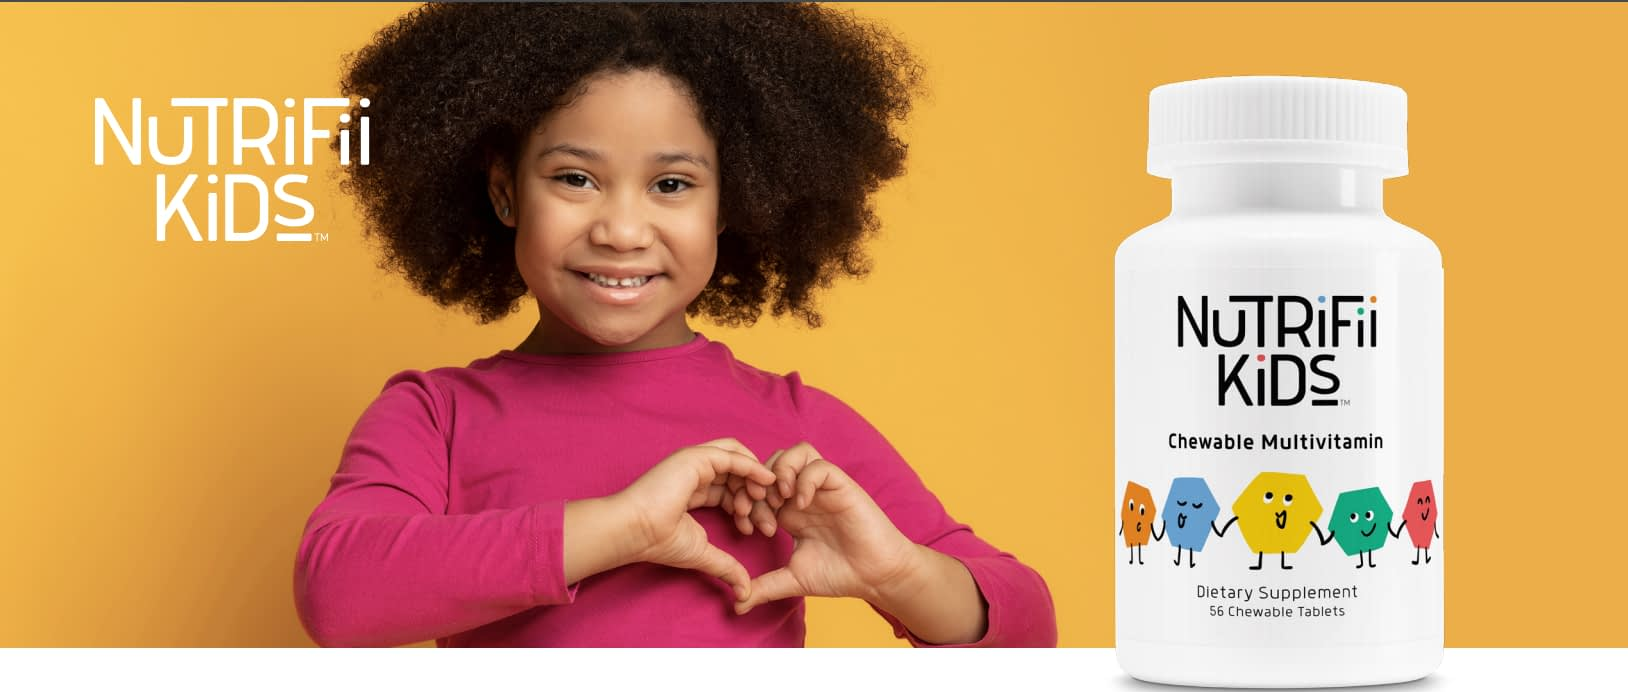 Nutrifii Kids Front picture